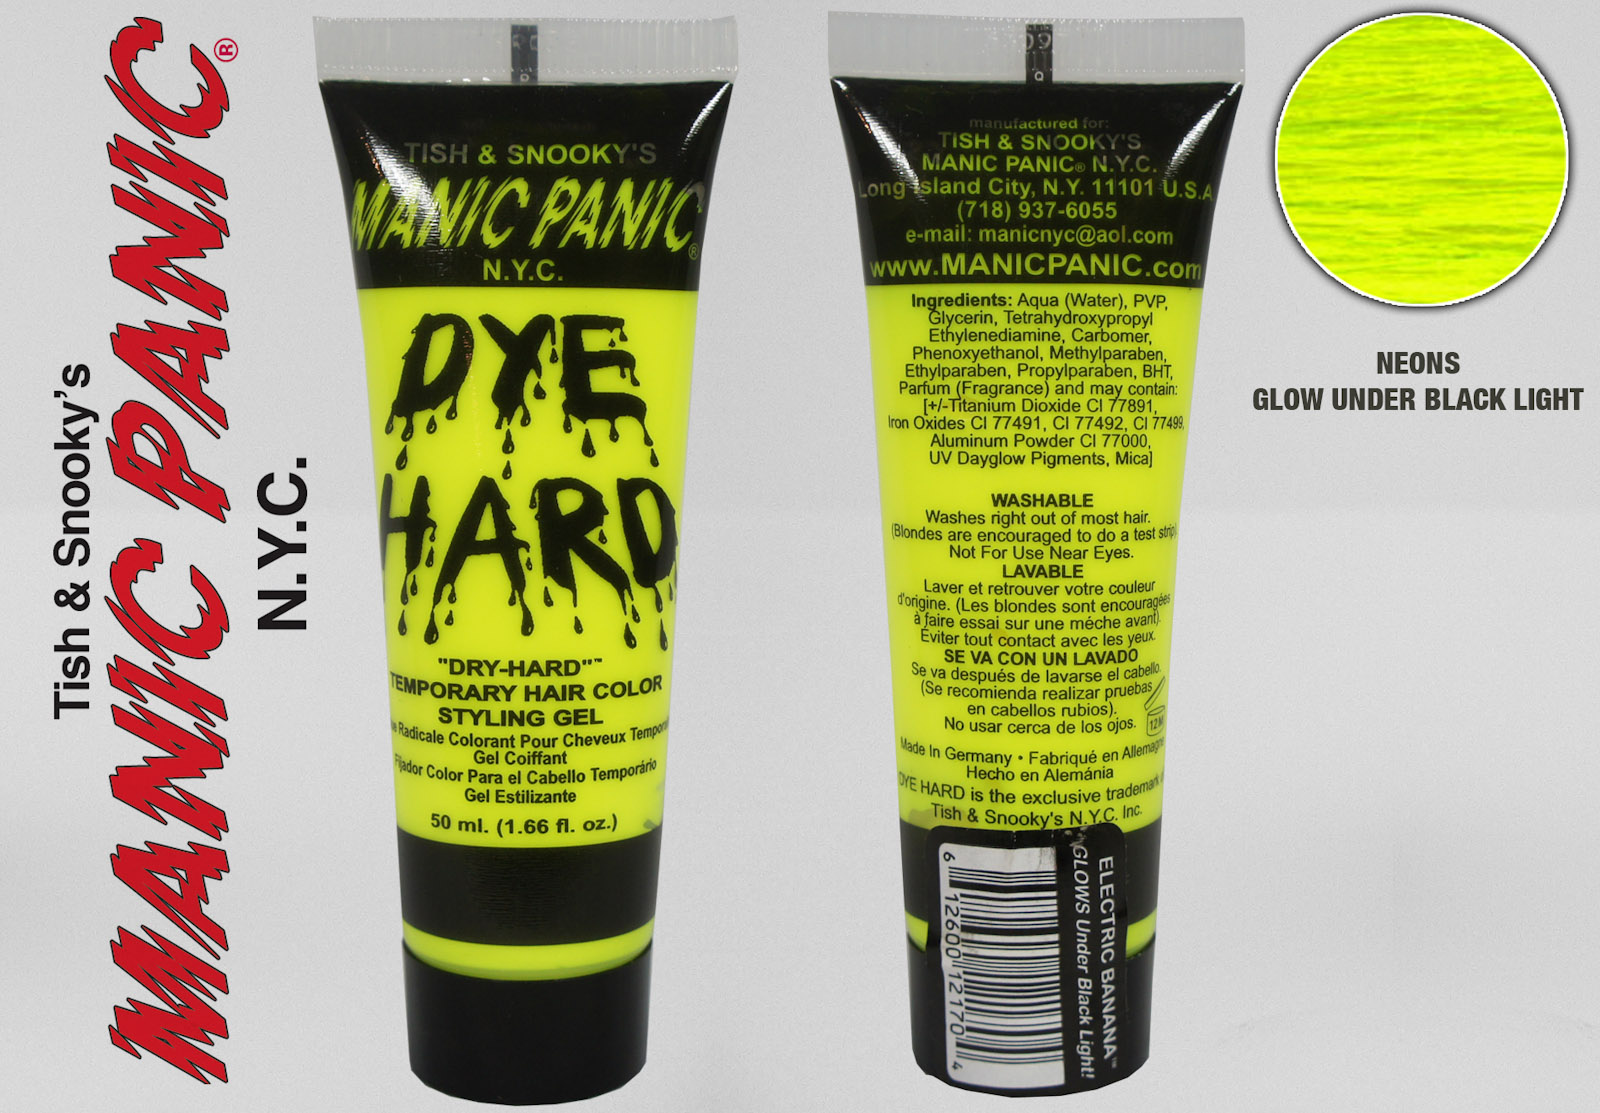 Choose Your Manic Panic Dye Hard Temporary Hair Color Styling Gel